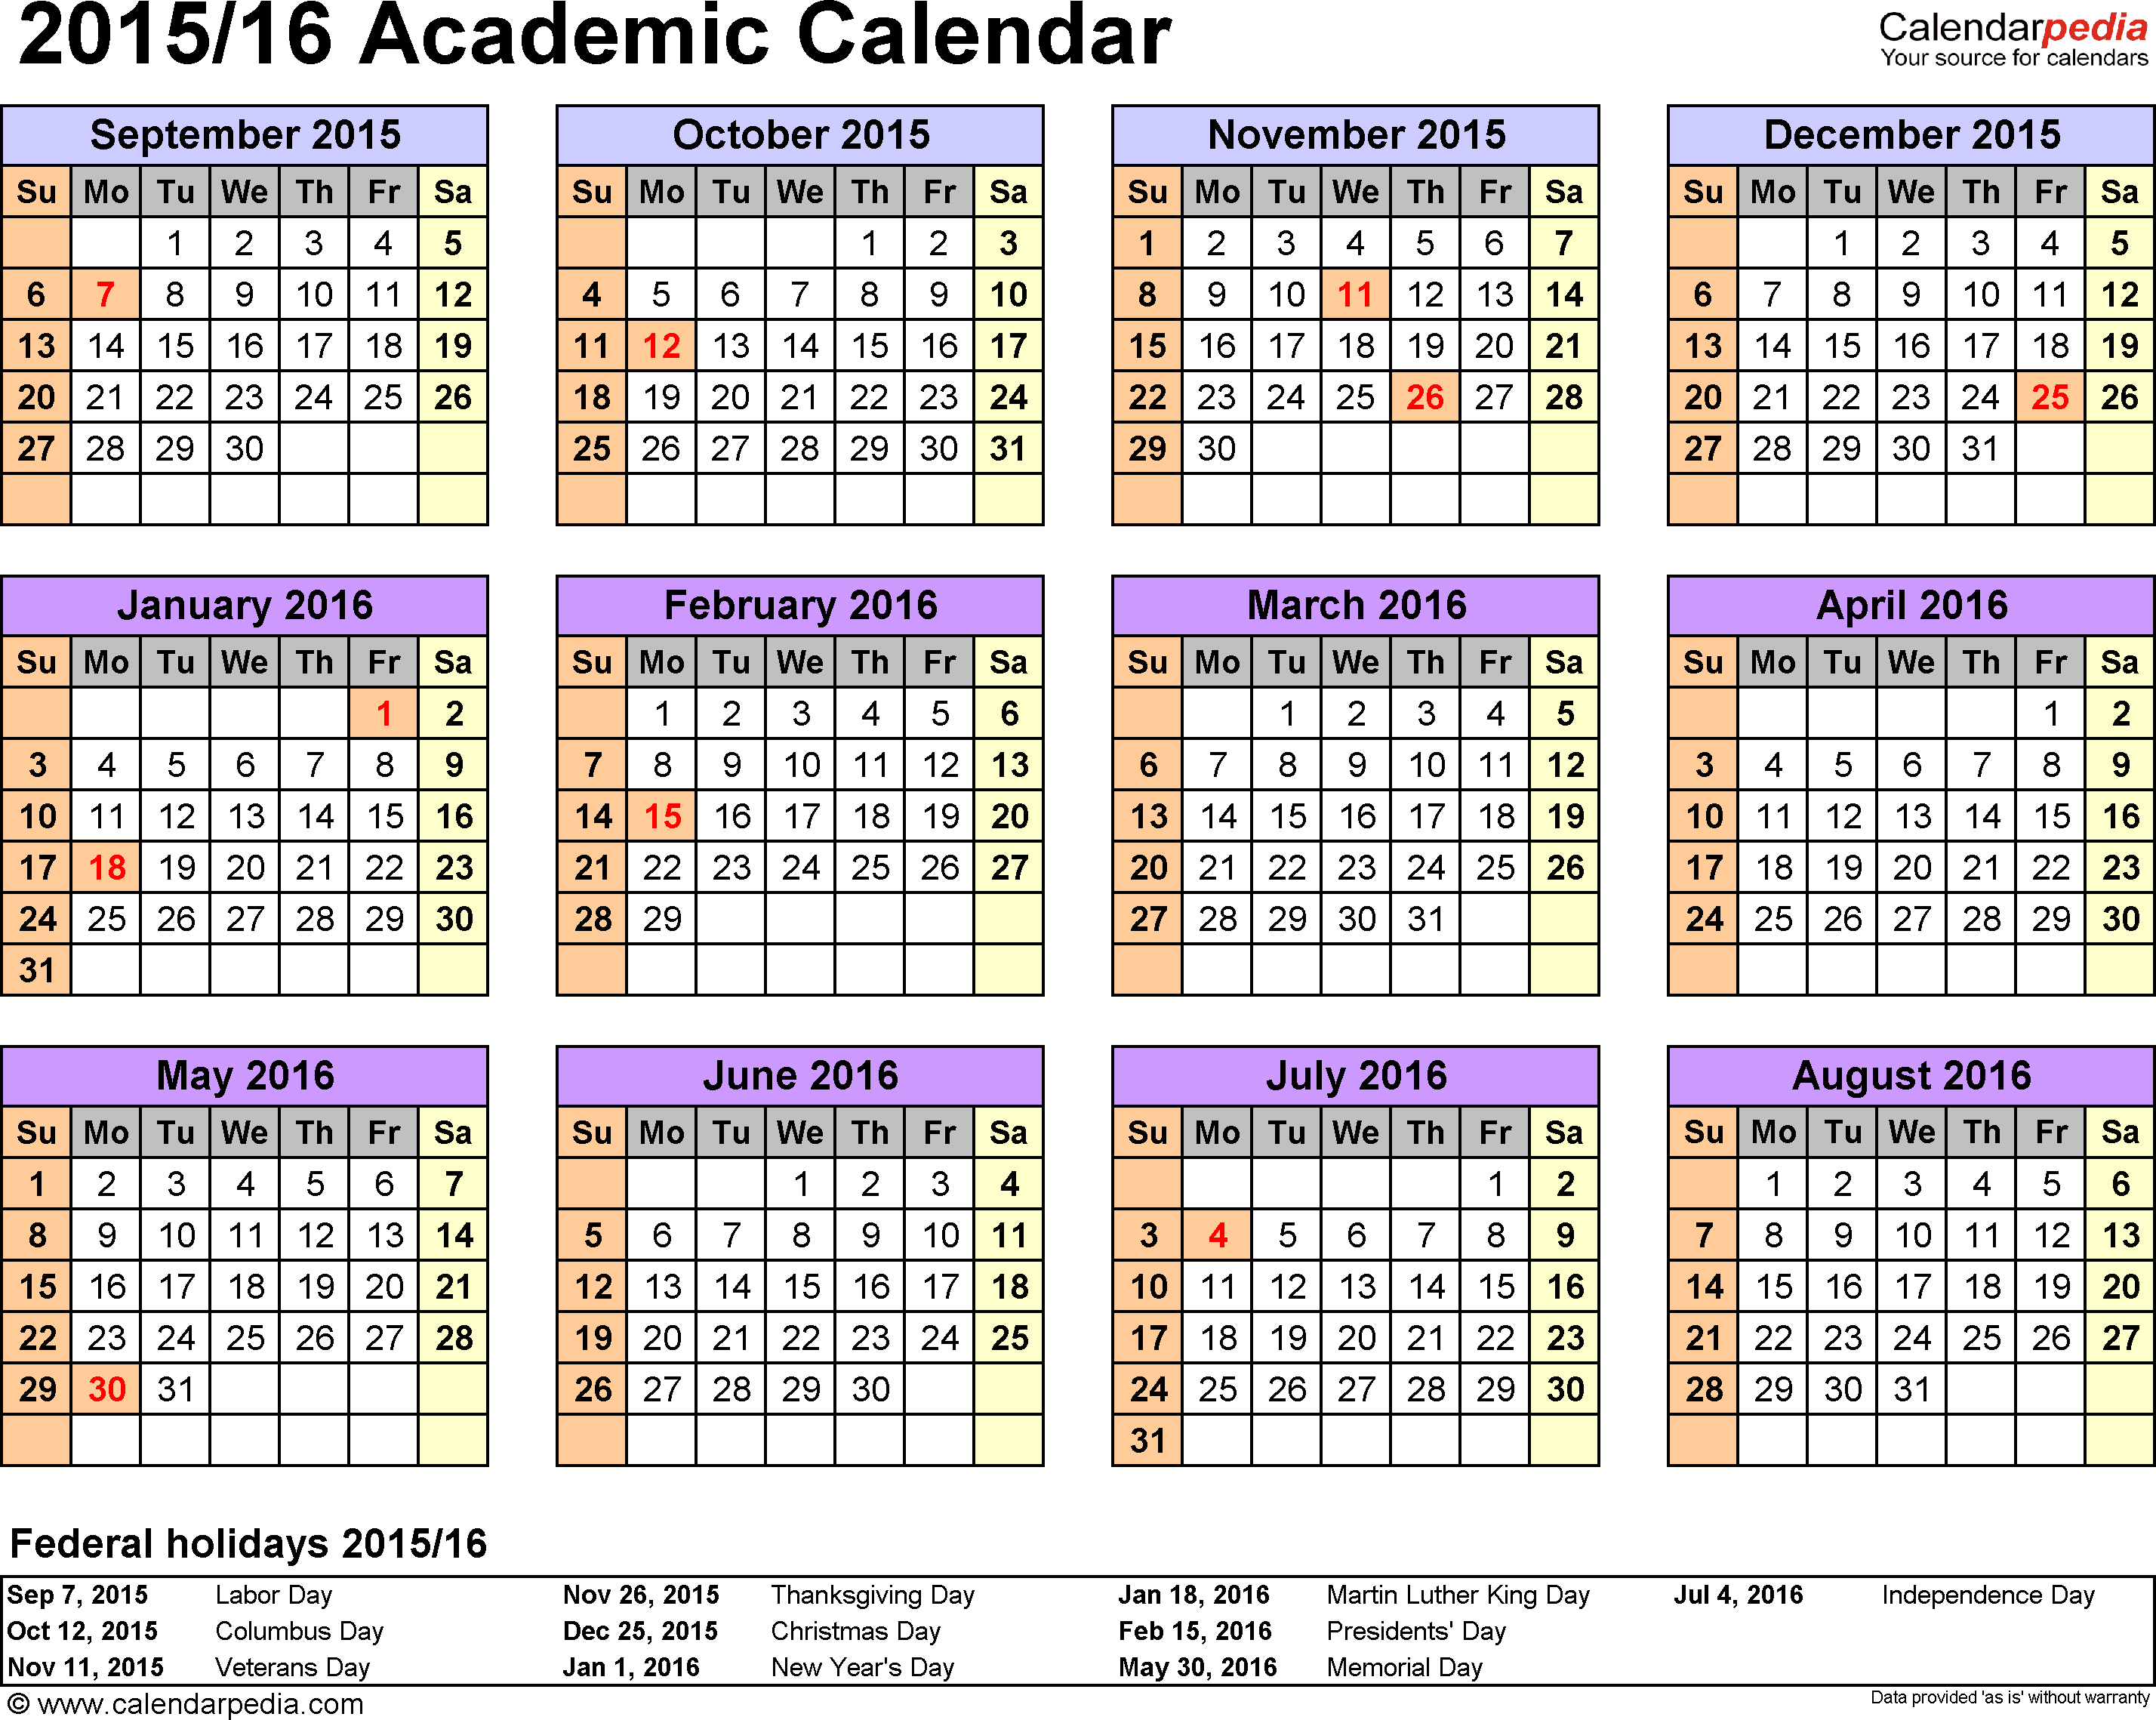 Template 4: Academic calendar 2015/16 for Excel, landscape orientation, year at a glance, 1 page